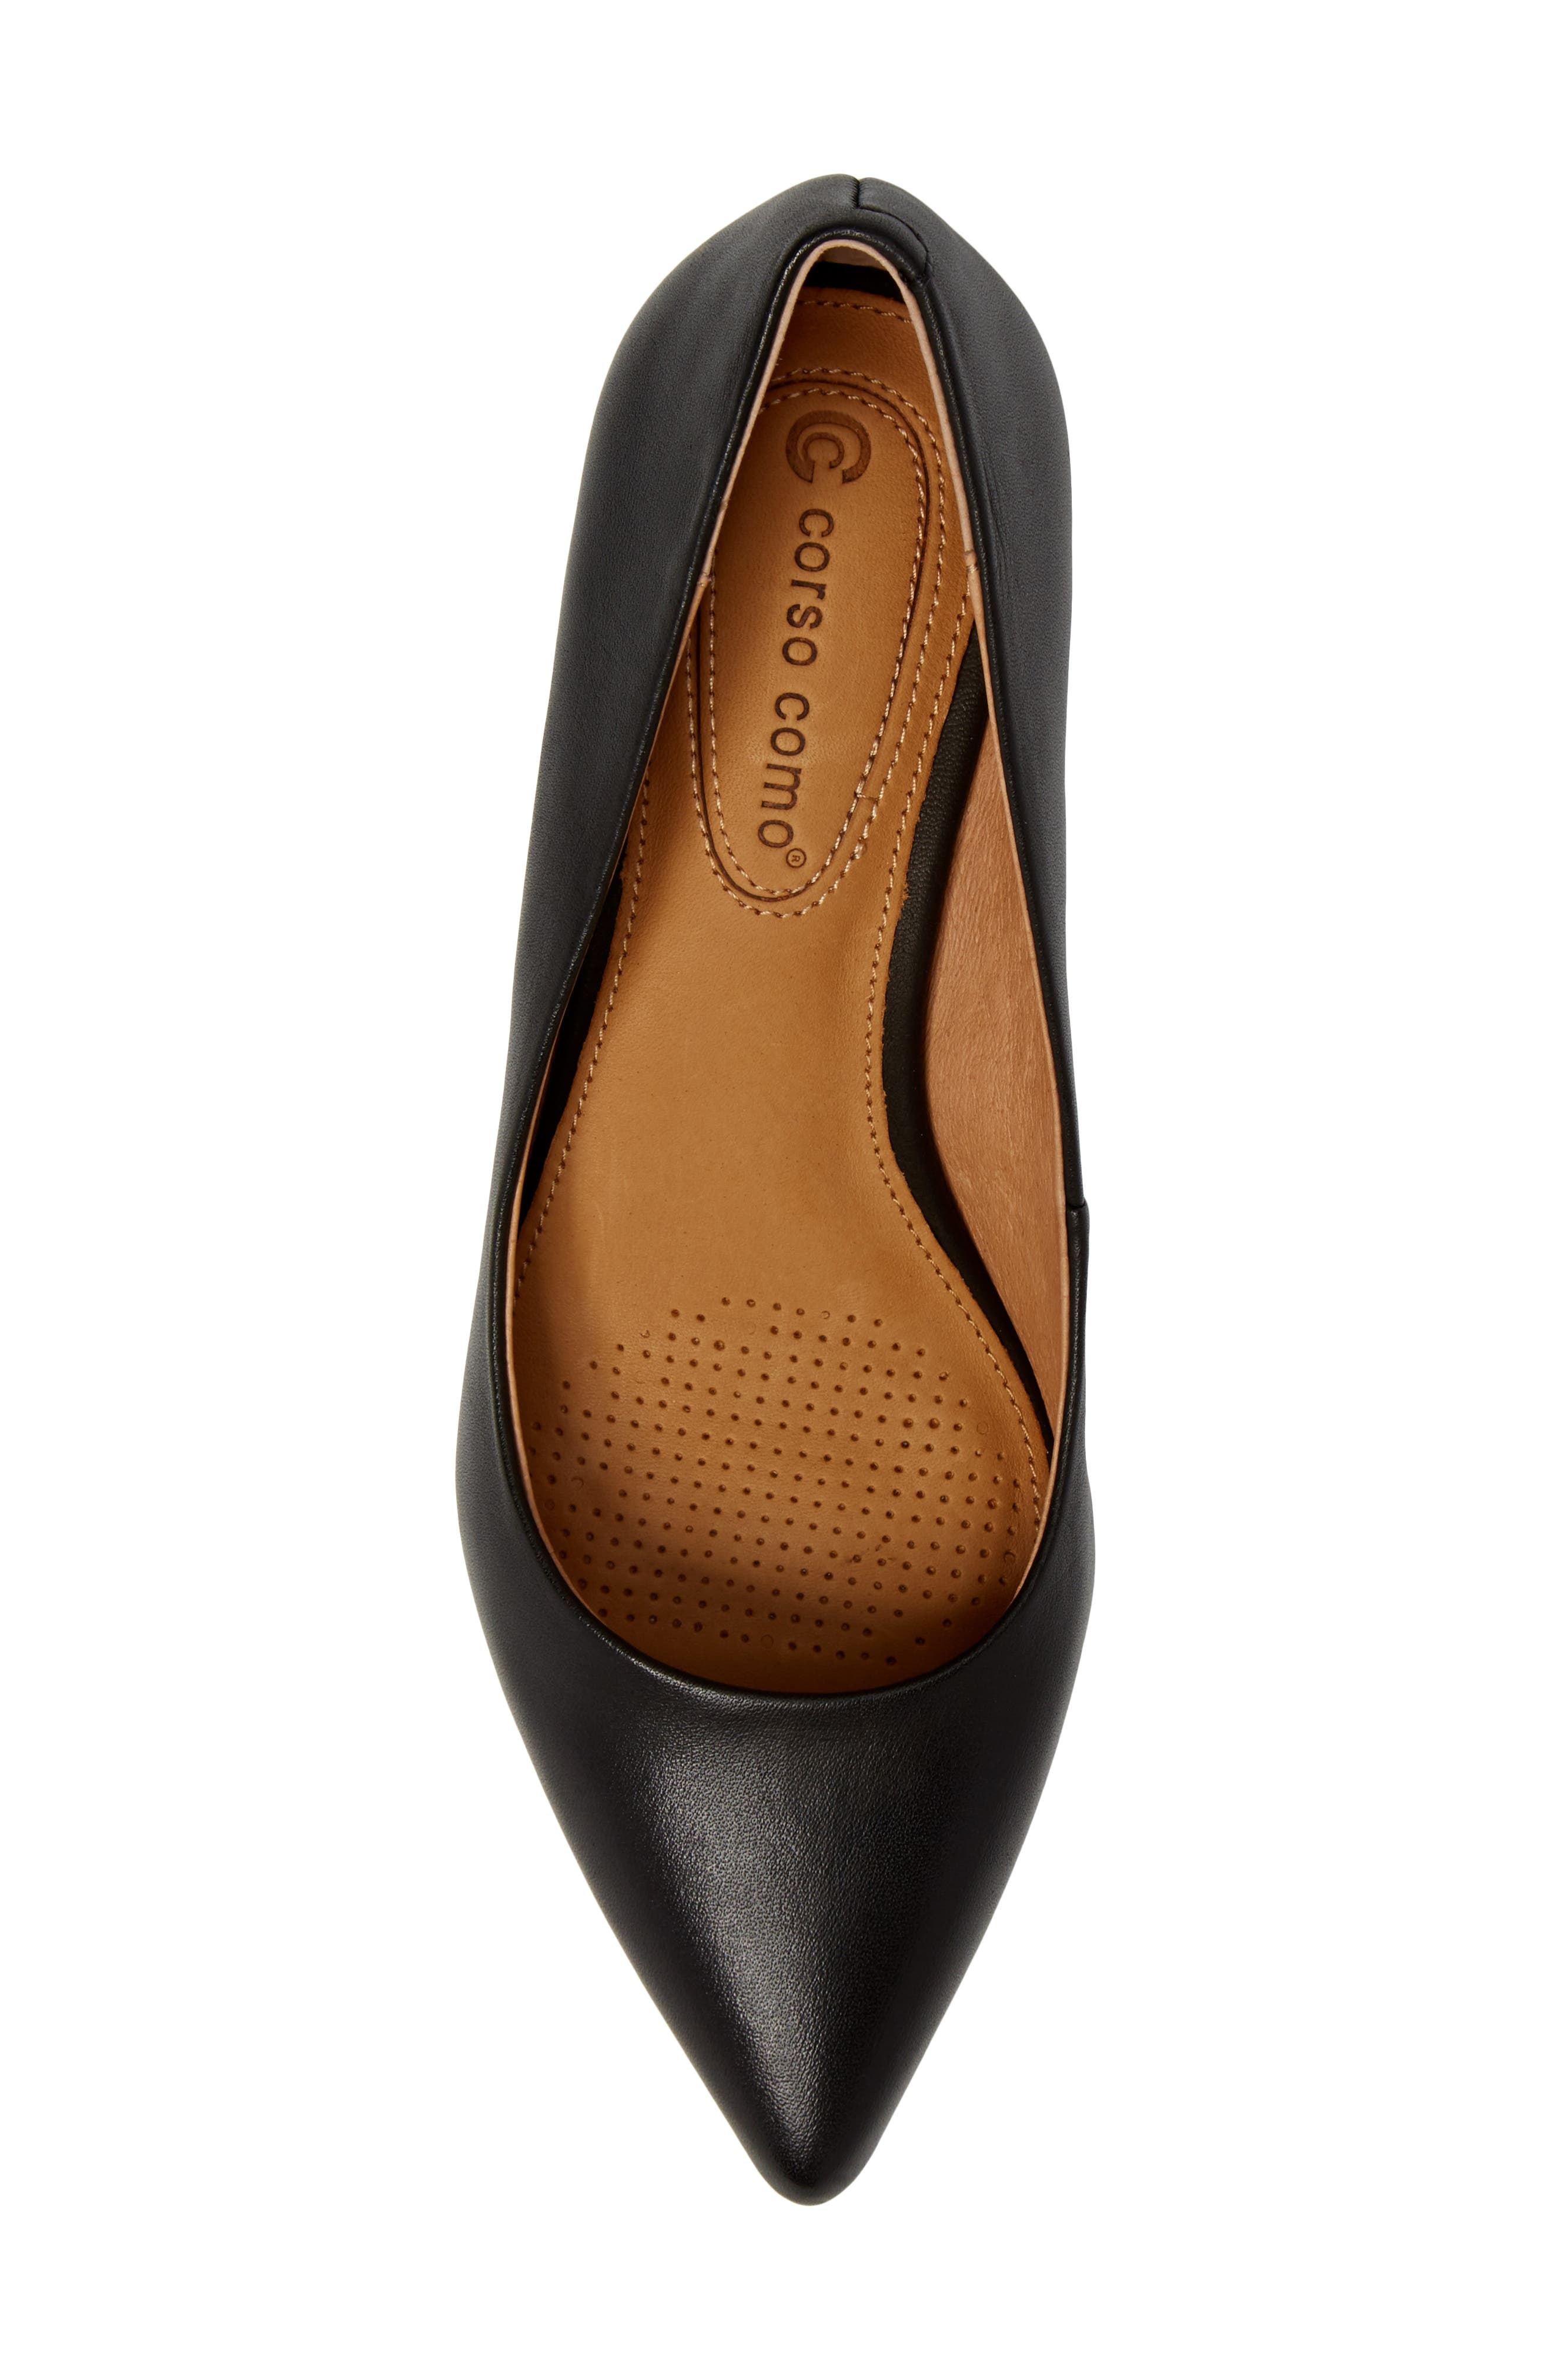 Nelly Pointy Toe Wedge Pump,                             Alternate thumbnail 5, color,                             Black Leather